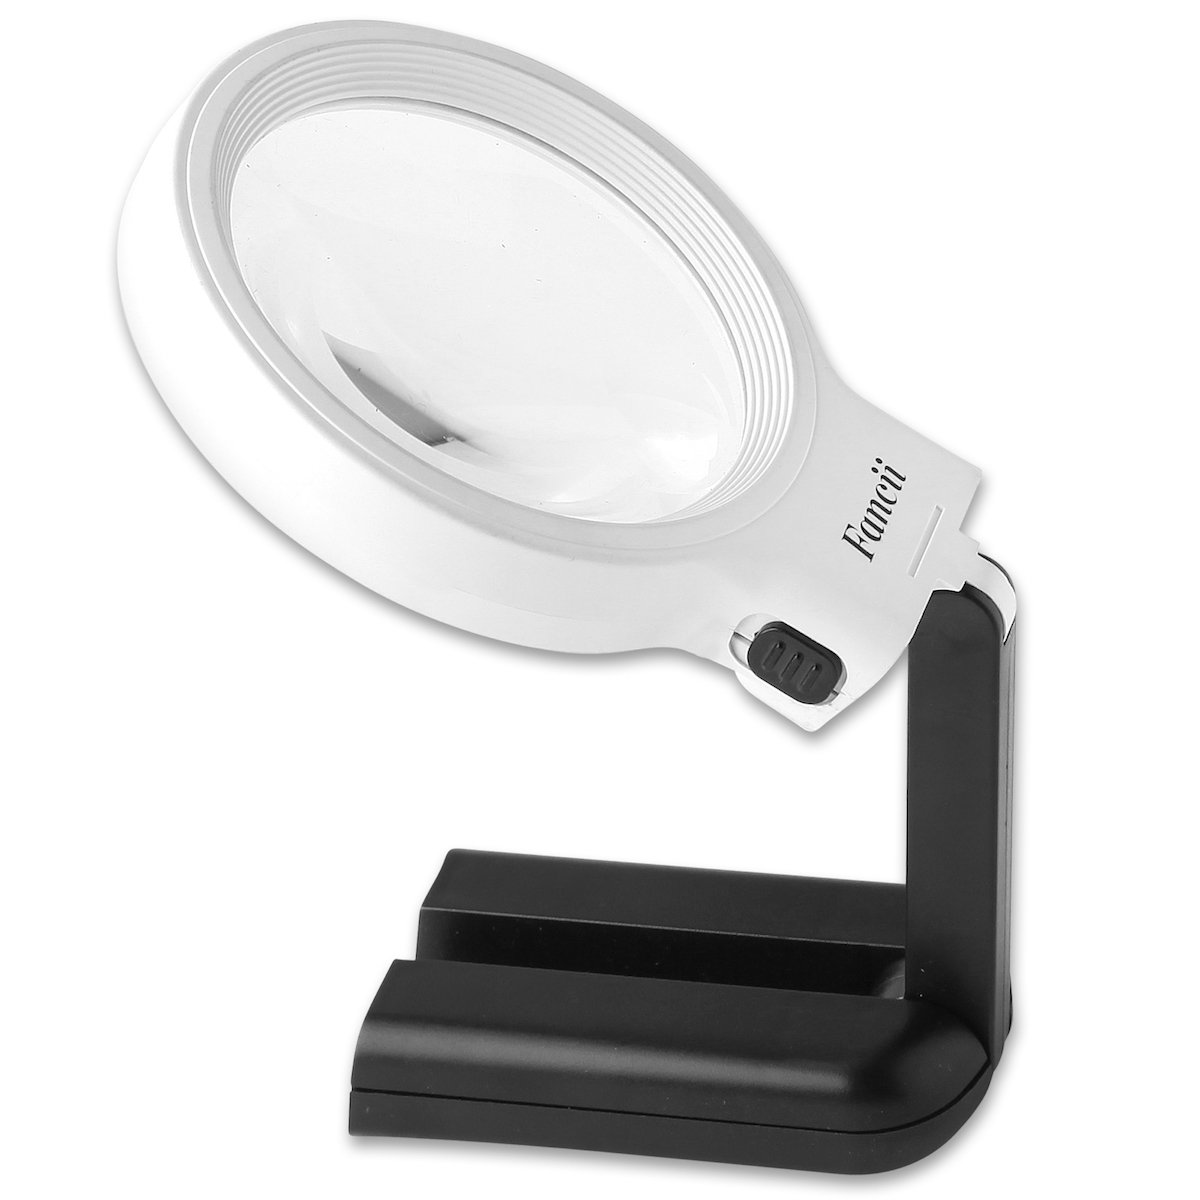 Fancii LED Lighted Hands Free Magnifying Glass with Light Stand - 2X 4X Large Portable Illuminated Magnifier for Reading, Inspection, Soldering, Needlework, Repair, Hobby & Crafts by Fancii